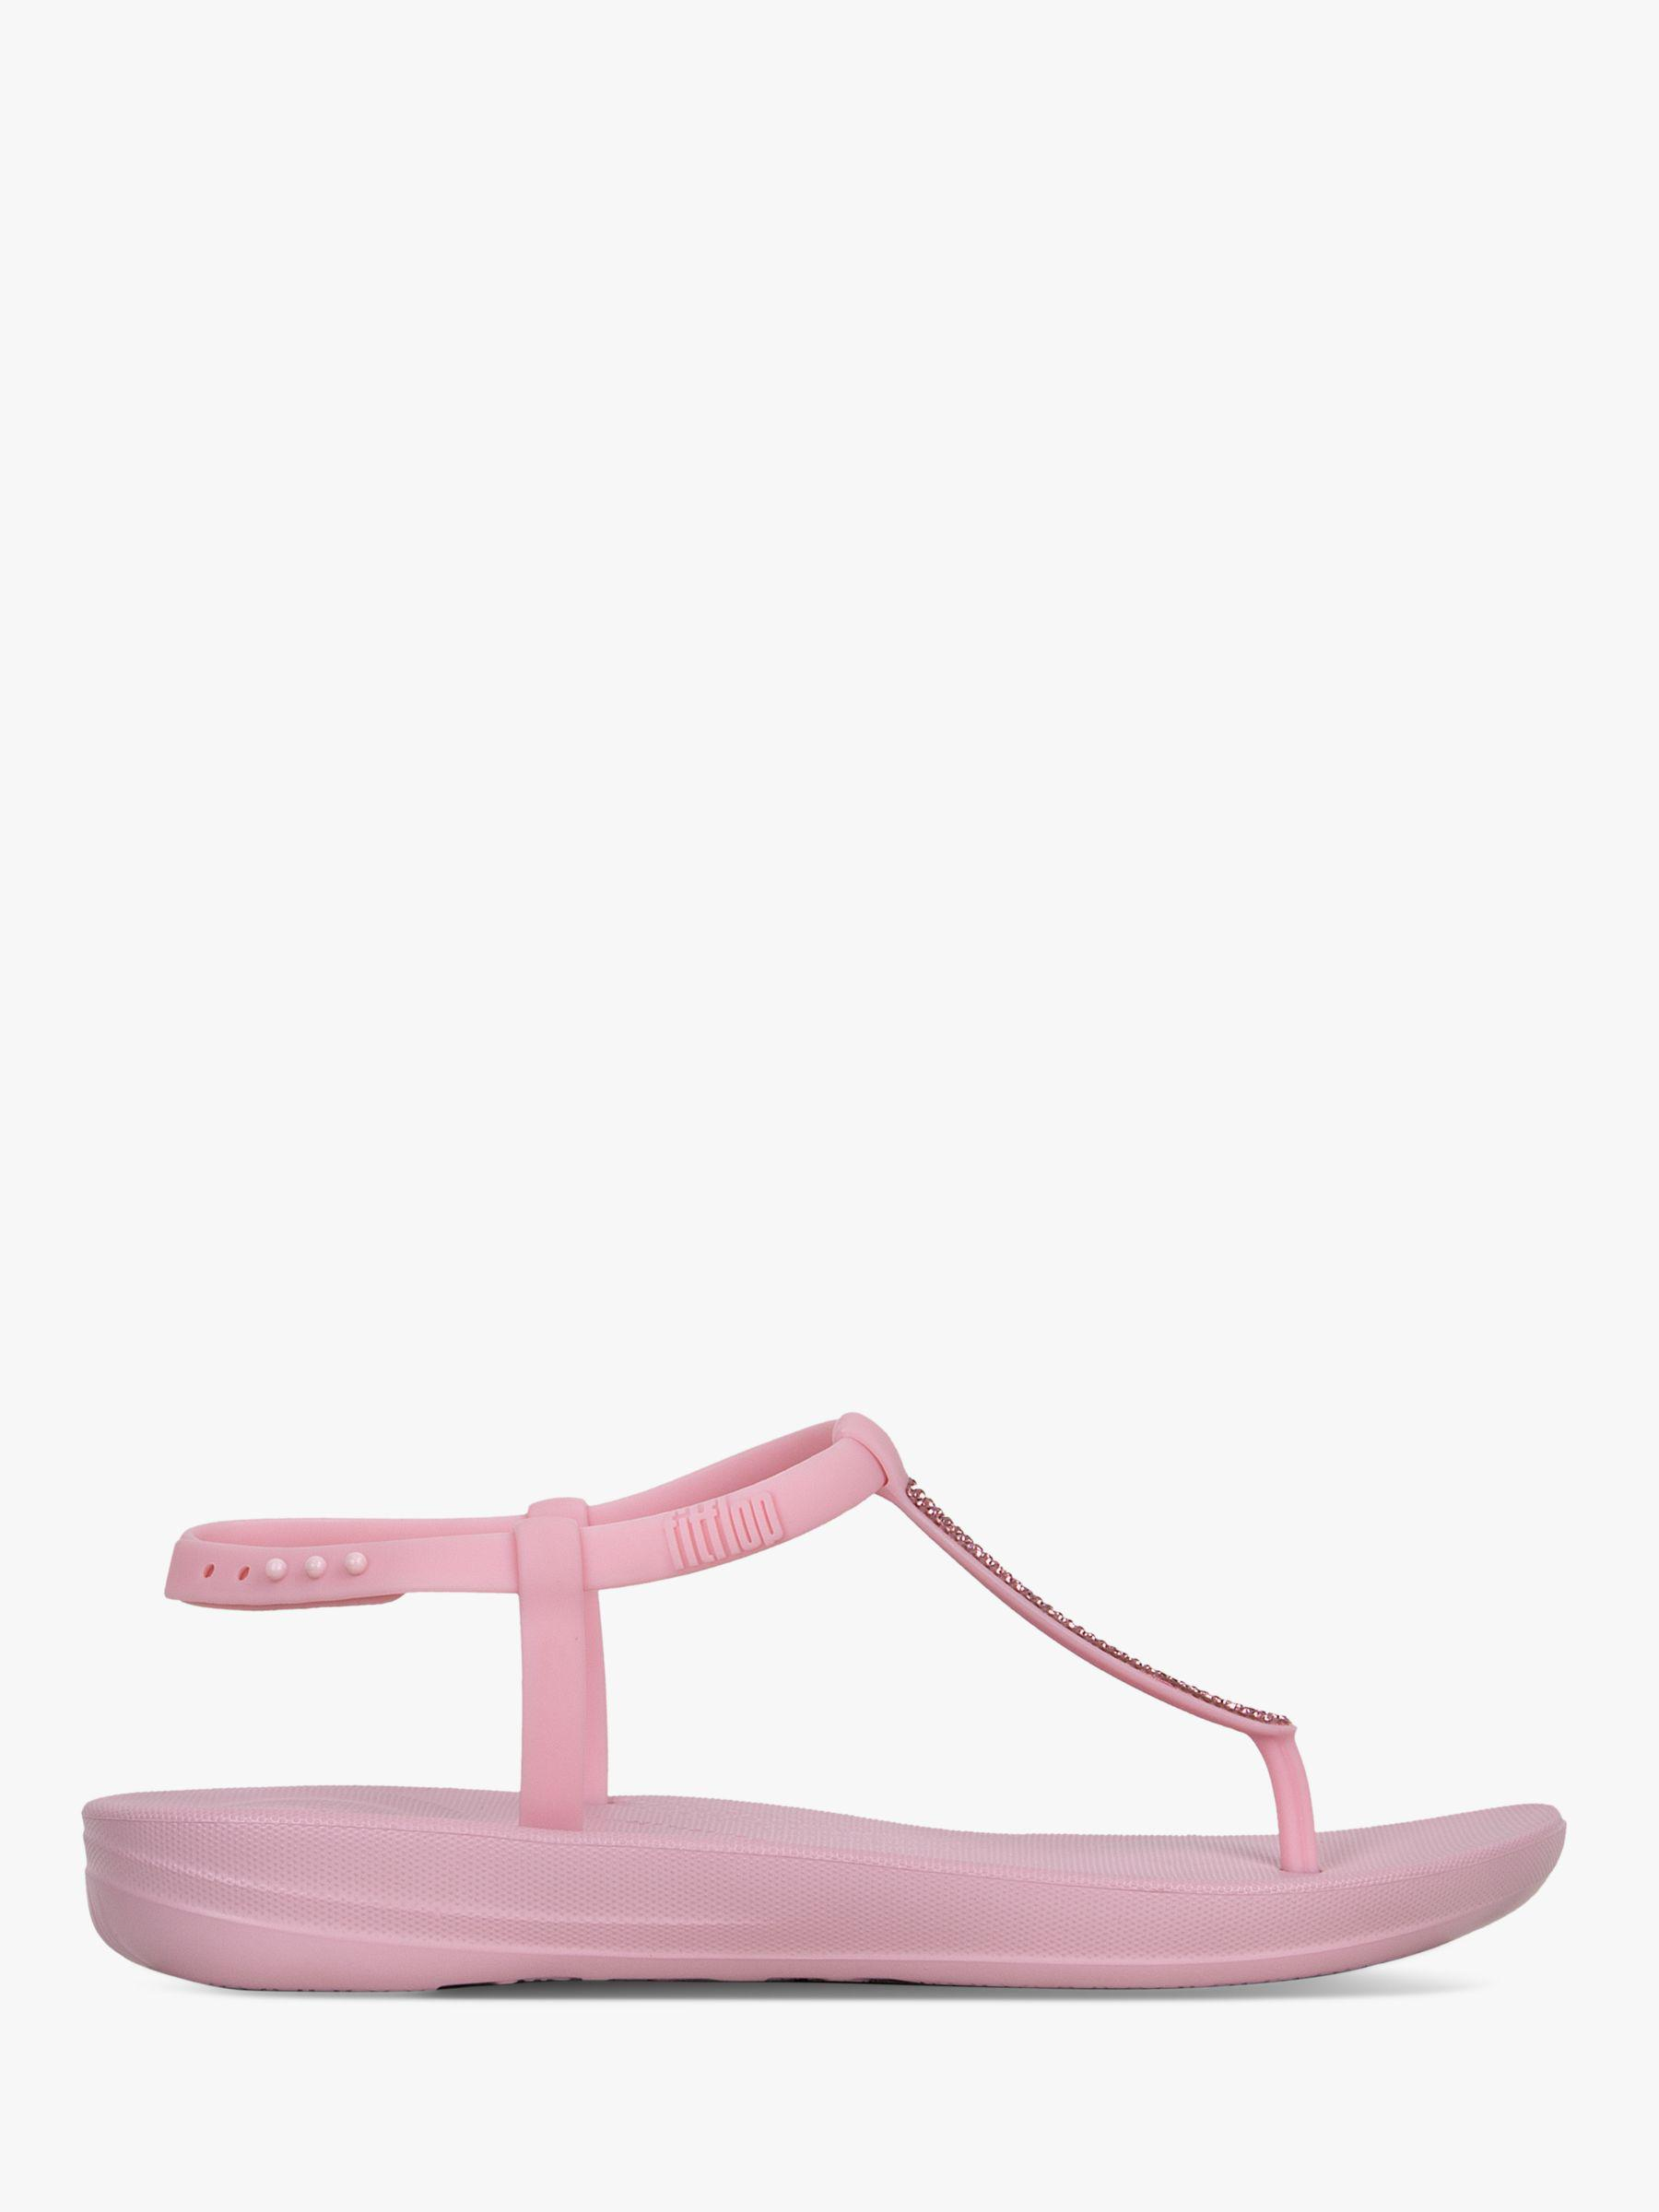 deee9ea6fb6 Fitflop Iqushion Splash Pearlised Sandals in Pink - Lyst